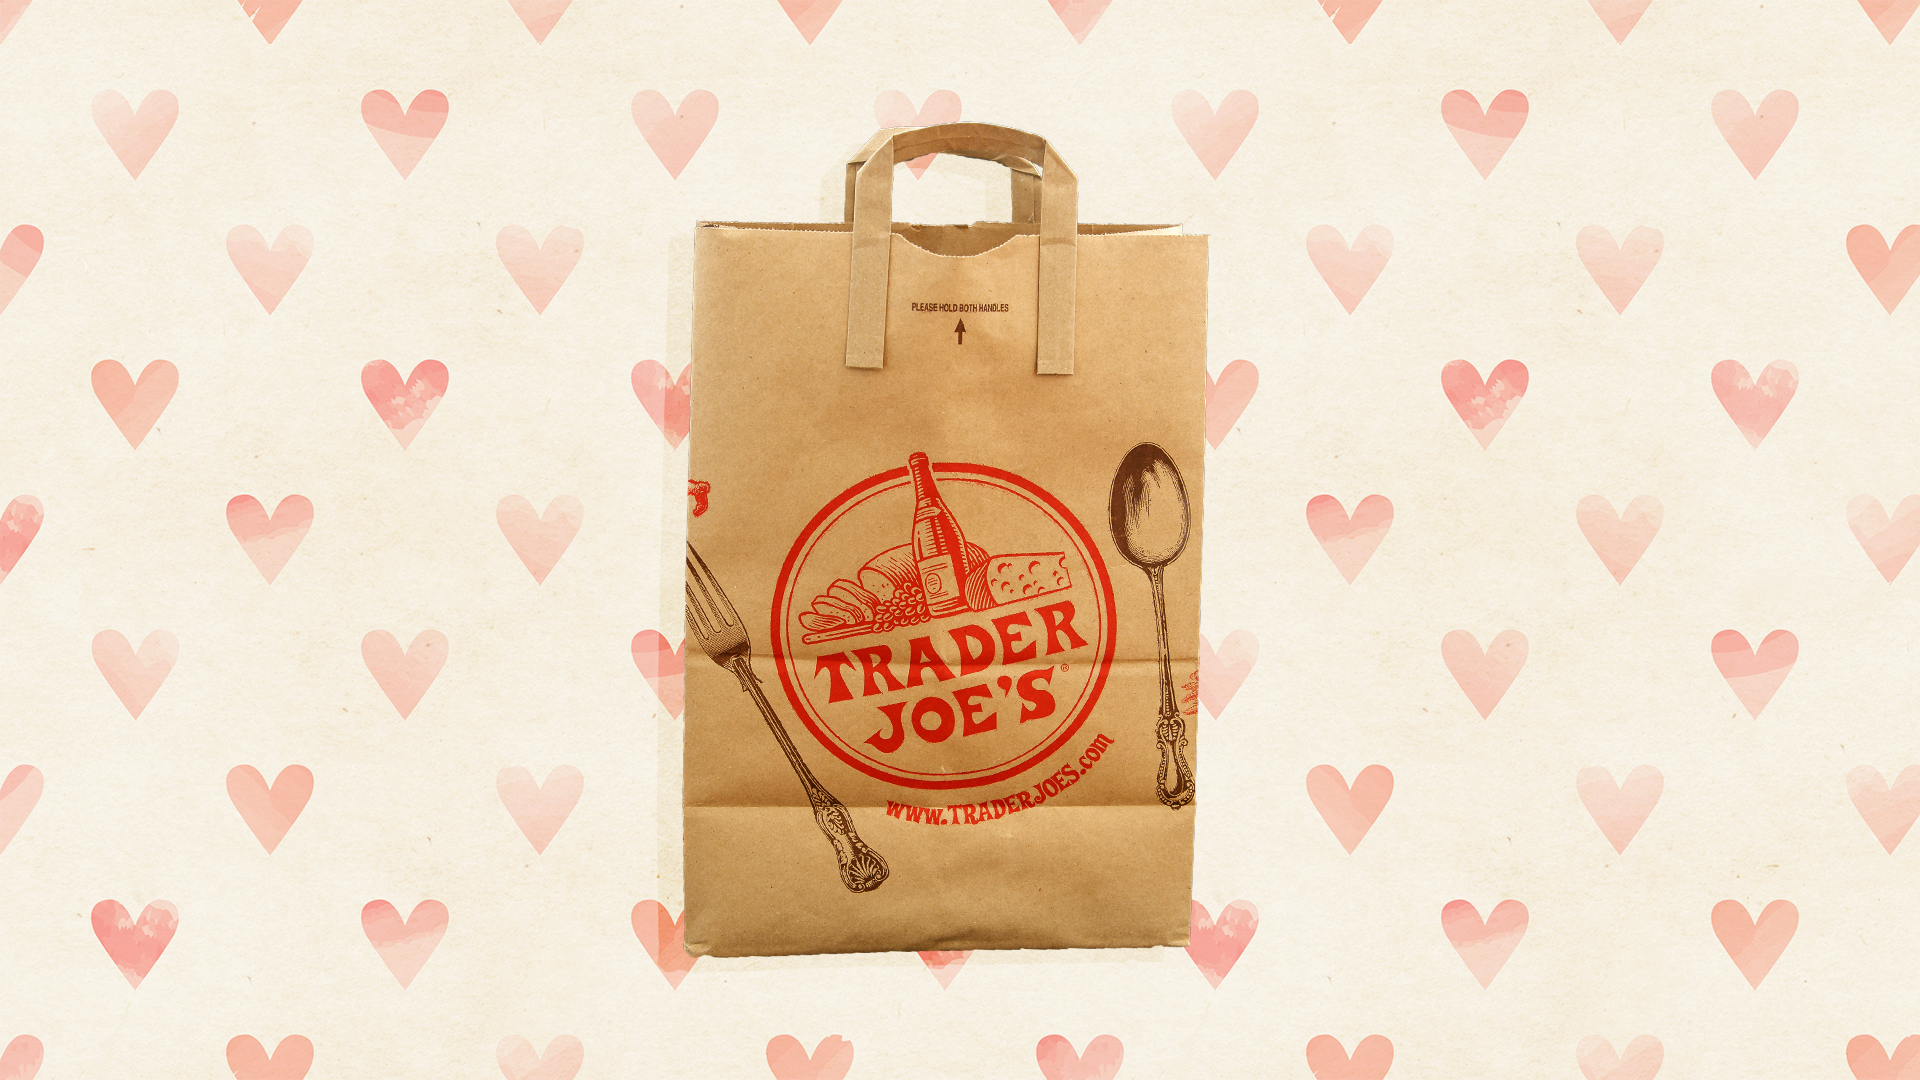 Trader Joe's Has a New Vegan Entree We Can't Stop Obsessing Over